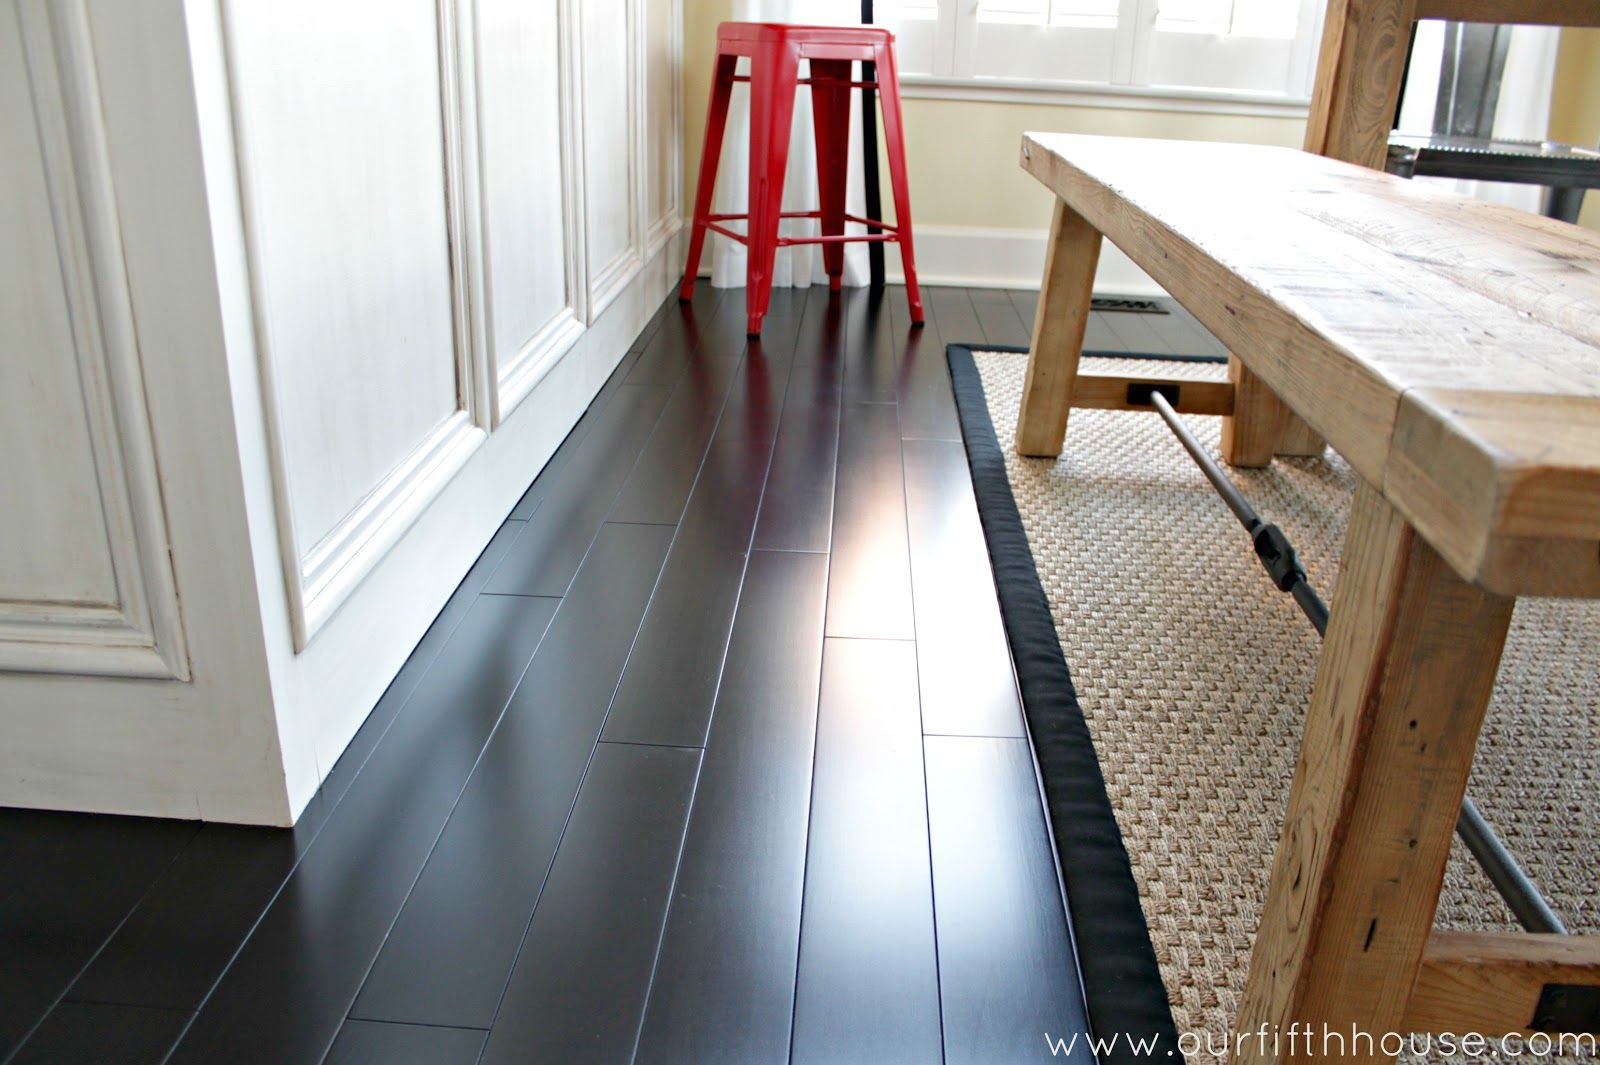 coast awesome slipperybamboo florida floor at size closer floating photos in diy basics the cons concept floors flooring look gulf full of cleaning pros and are facts bamboo